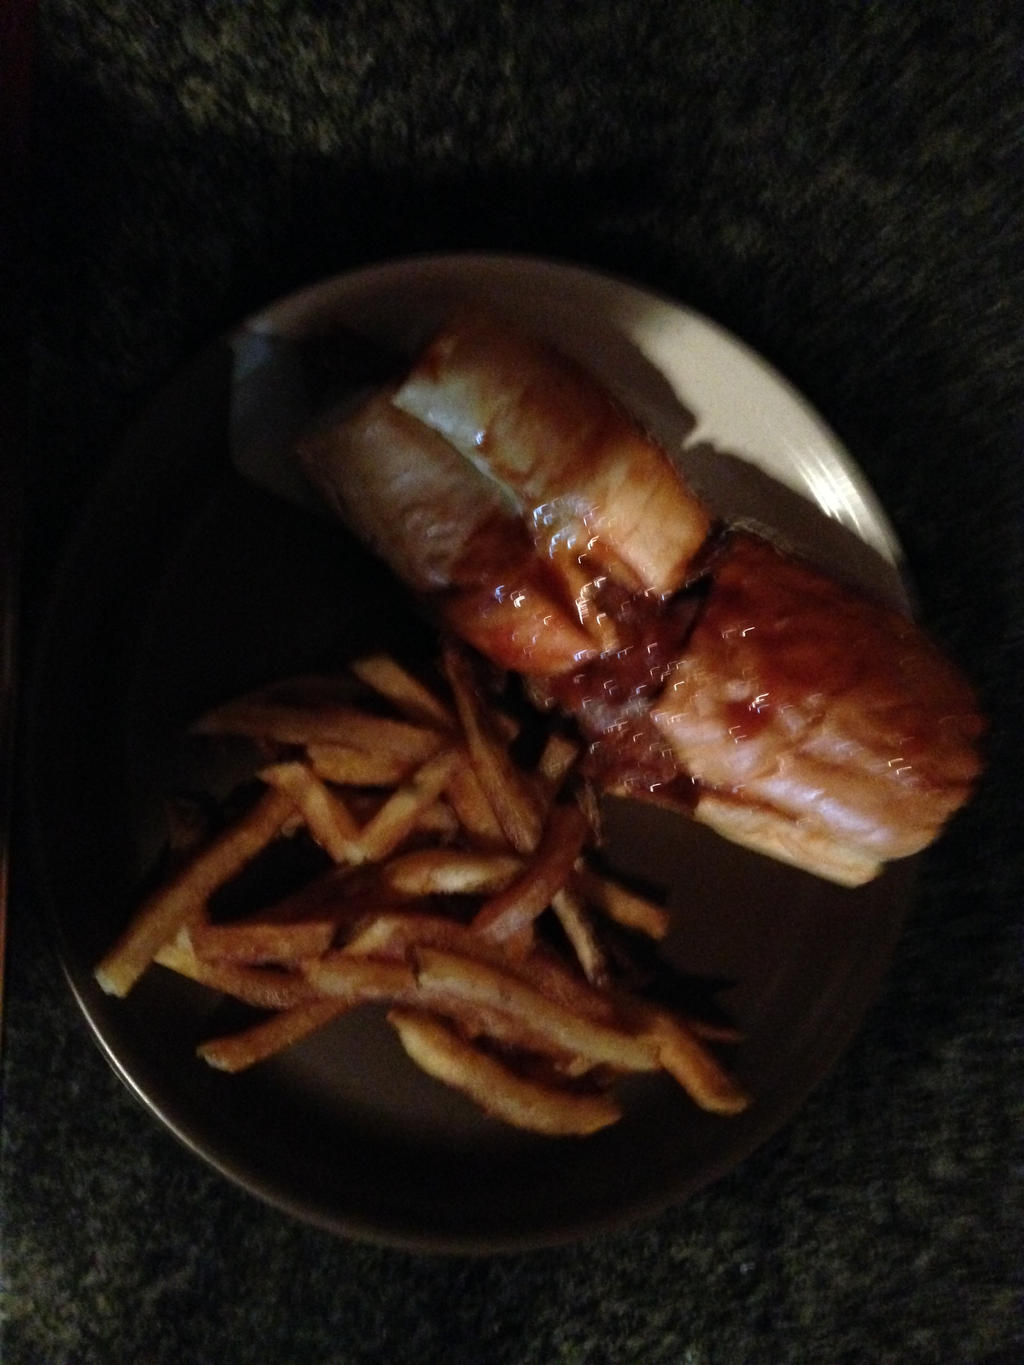 BBQ Italian Beef sandwich with french fries by dth1971